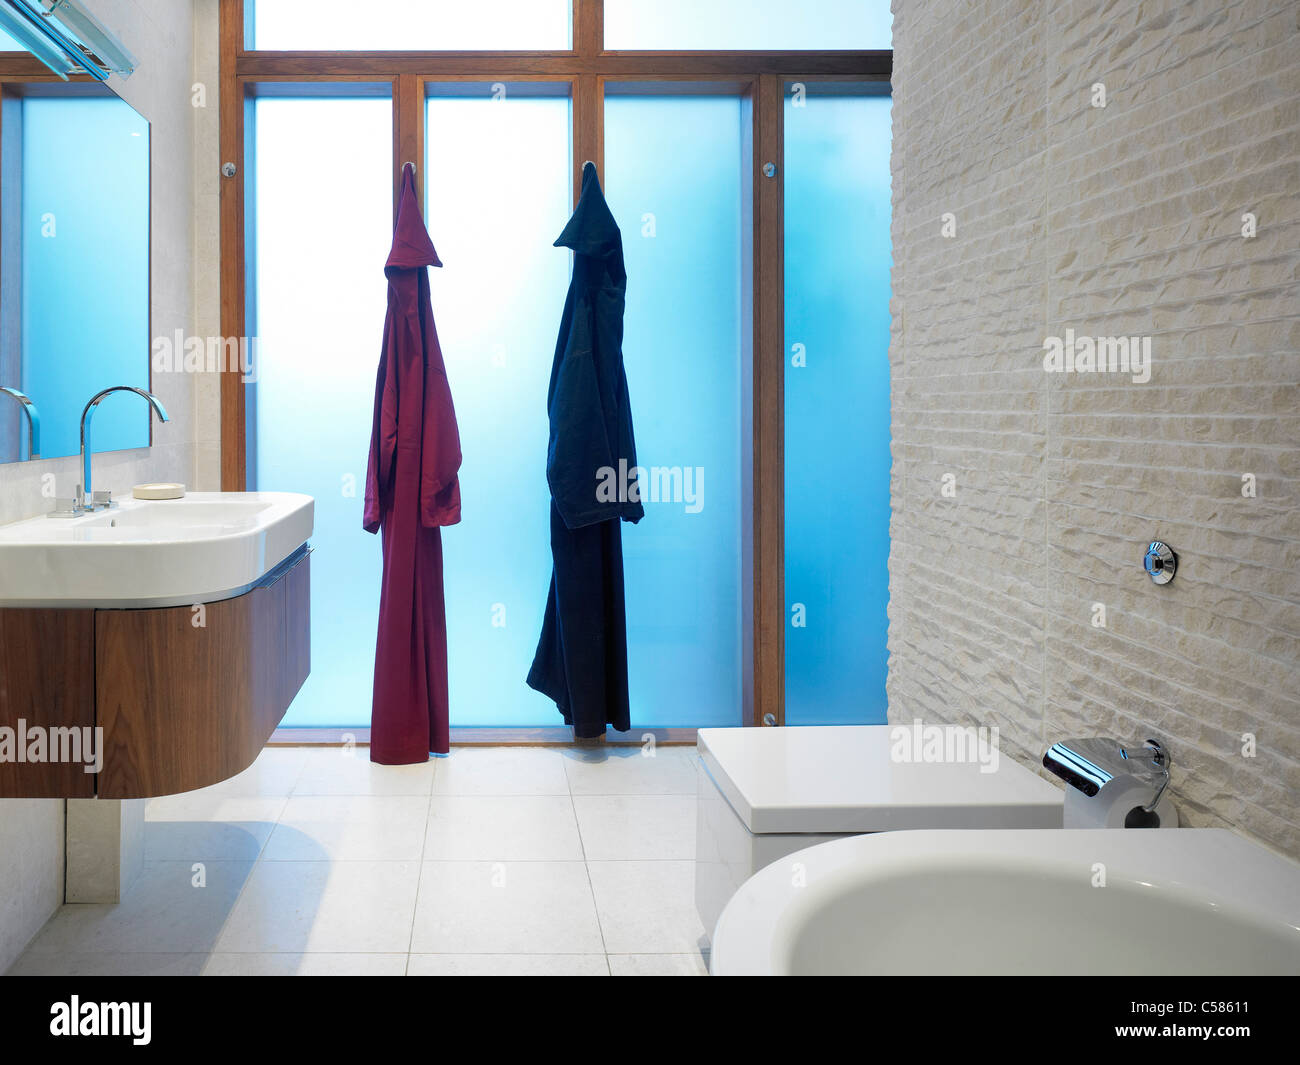 Two bath robes hanging in a modern bathroom Stock Photo: 37674365 ...